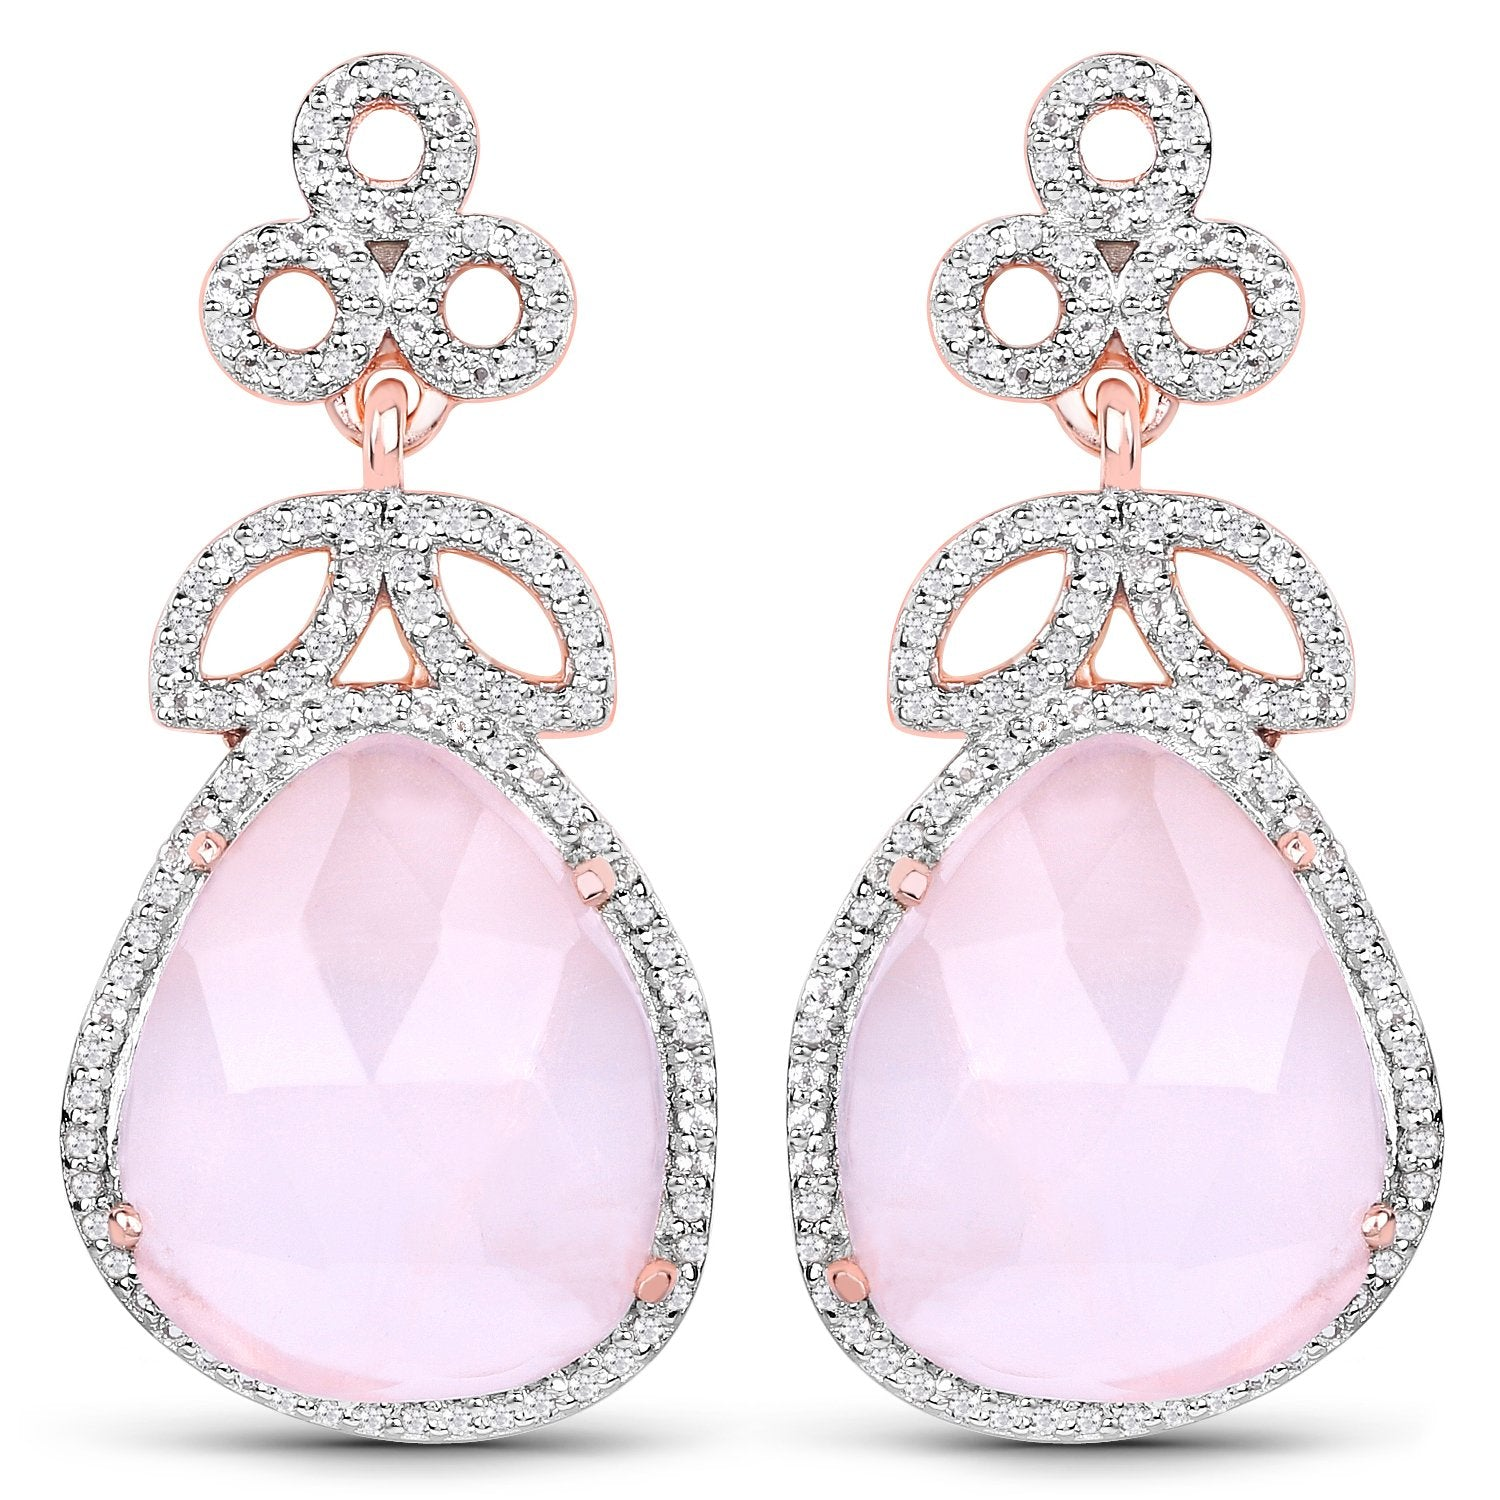 LoveHuang 18.72 Carats Genuine Rose Quartz and White Topaz Floral Dangle Earrings Solid .925 Sterling Silver With 18KT Rose Gold Plating